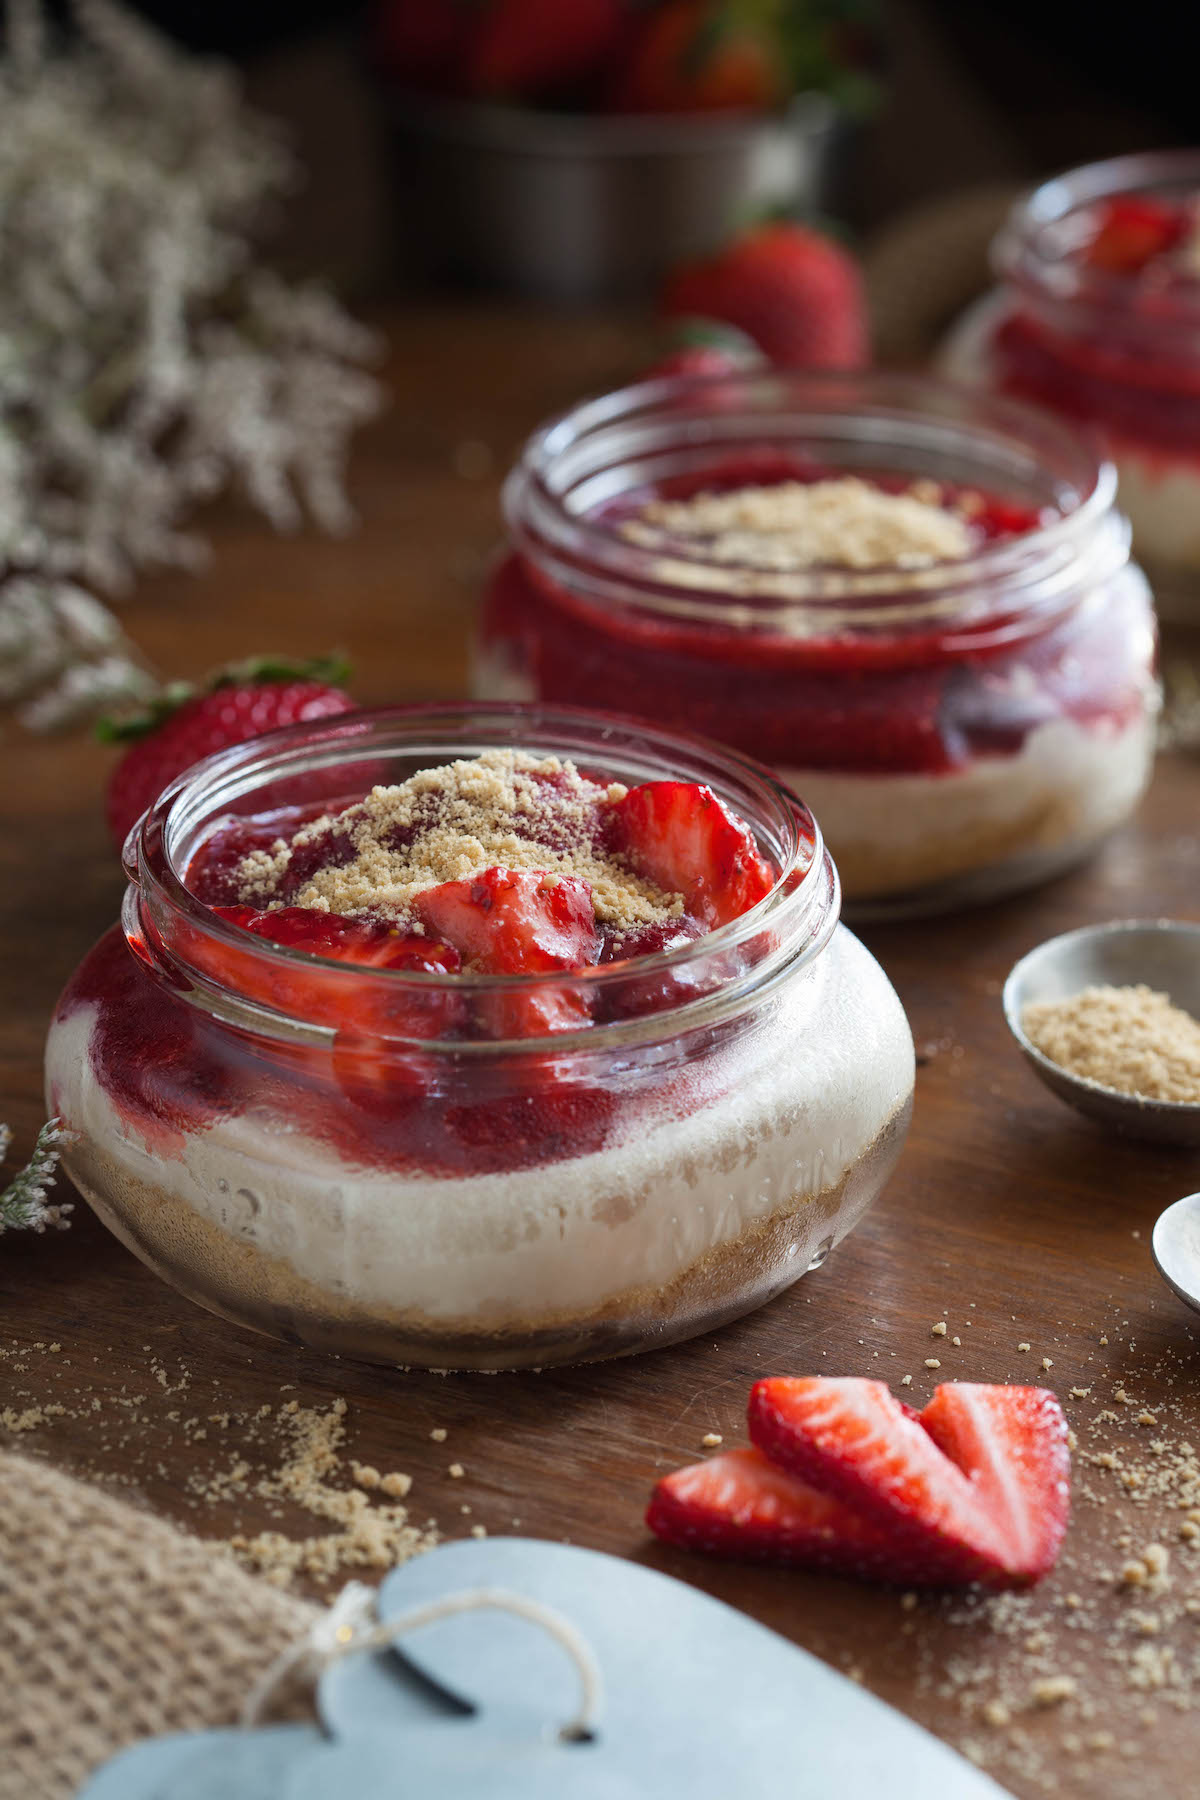 Strawberry Cheesecake Jars